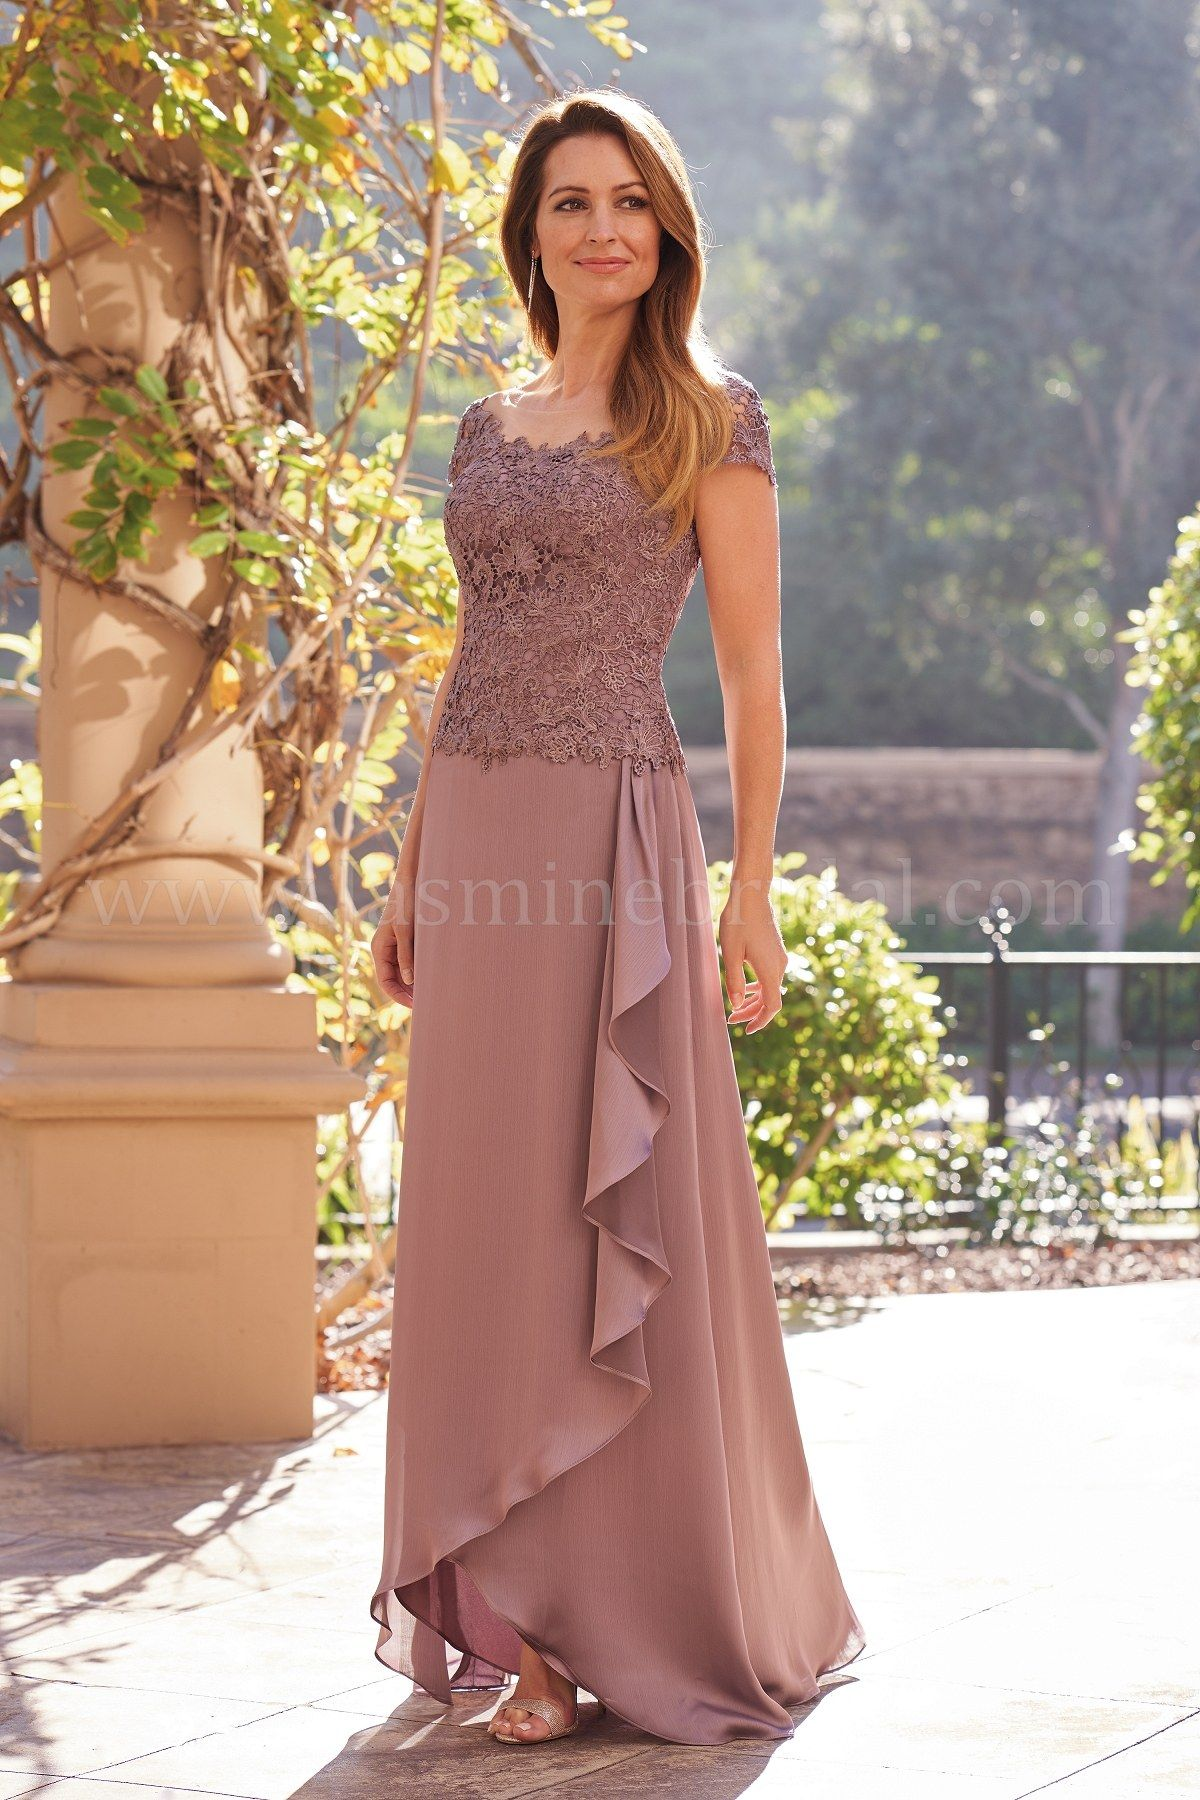 Gorgeous Mother Of The Bride And Groom Dresses From Real Weddings Bride Bride Photo Bride Pictures